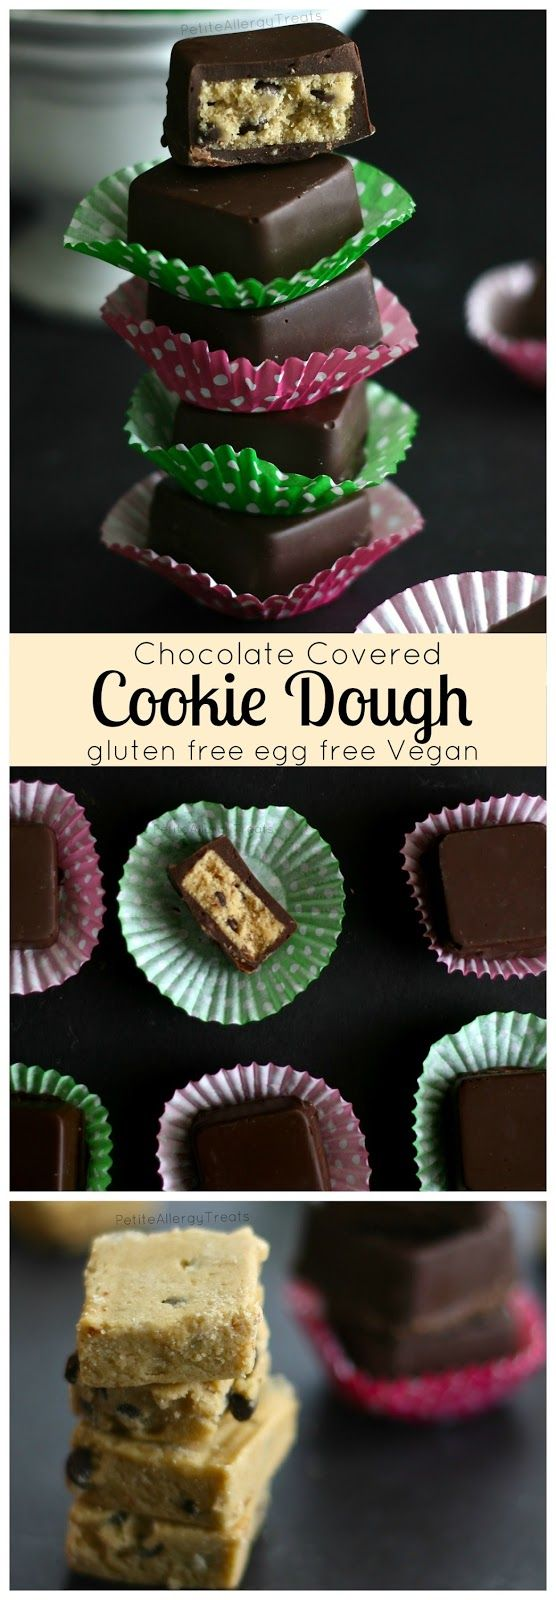 Cookie Dough Recipe Chocolate Squares (gluten free egg free Vegan) Raw eggless dairy free cookie dough dipped in chocolate for an extra sweet treat. allergen friendly.